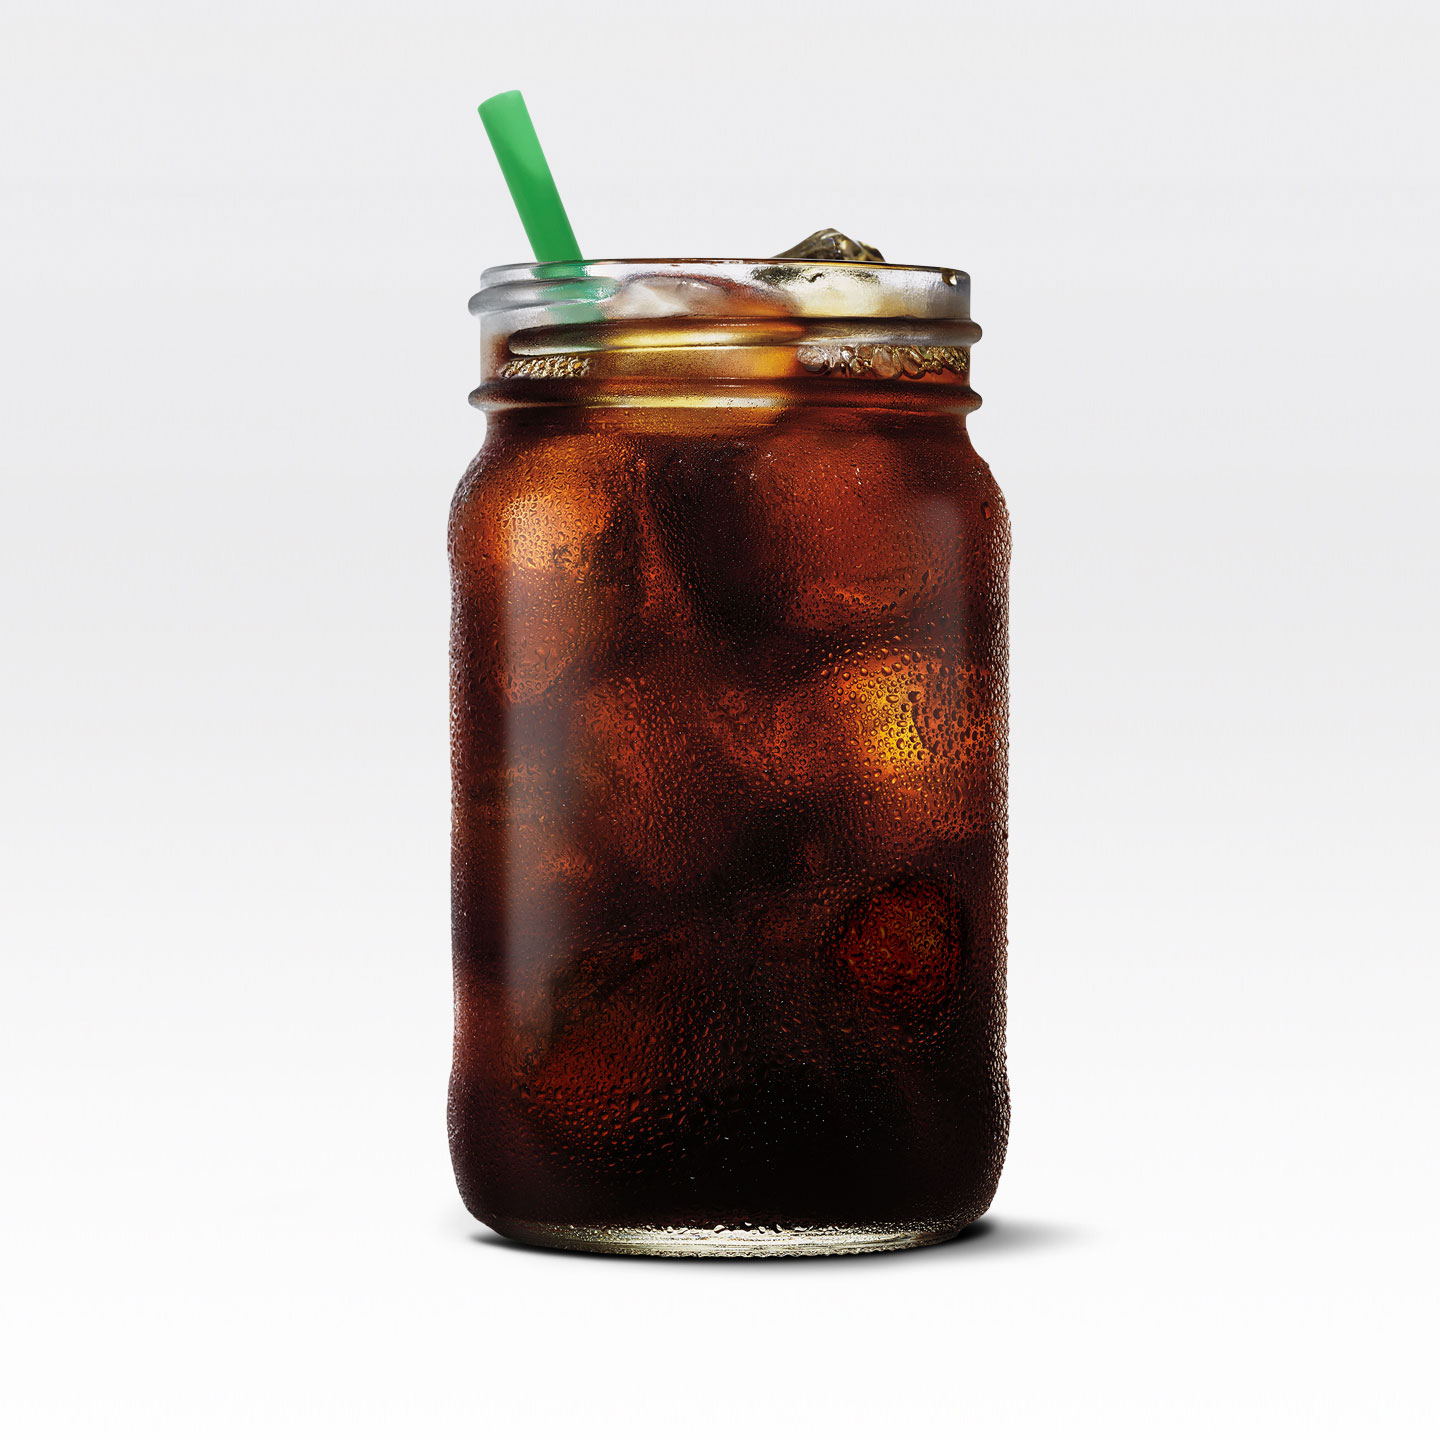 Cold Brew Starbucks Coffee Company